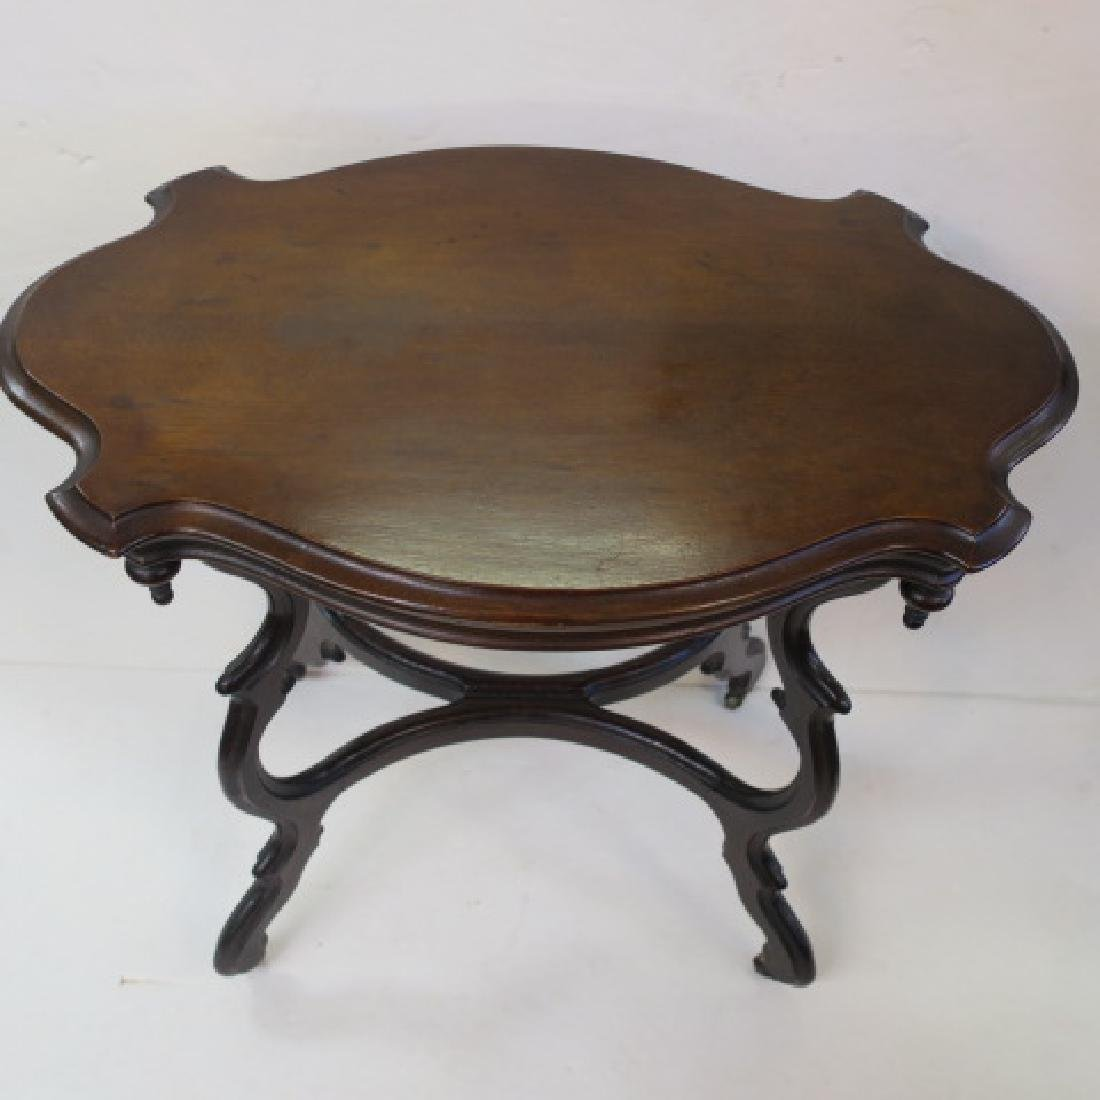 19th C. Walnut Turtle Top Side Table: